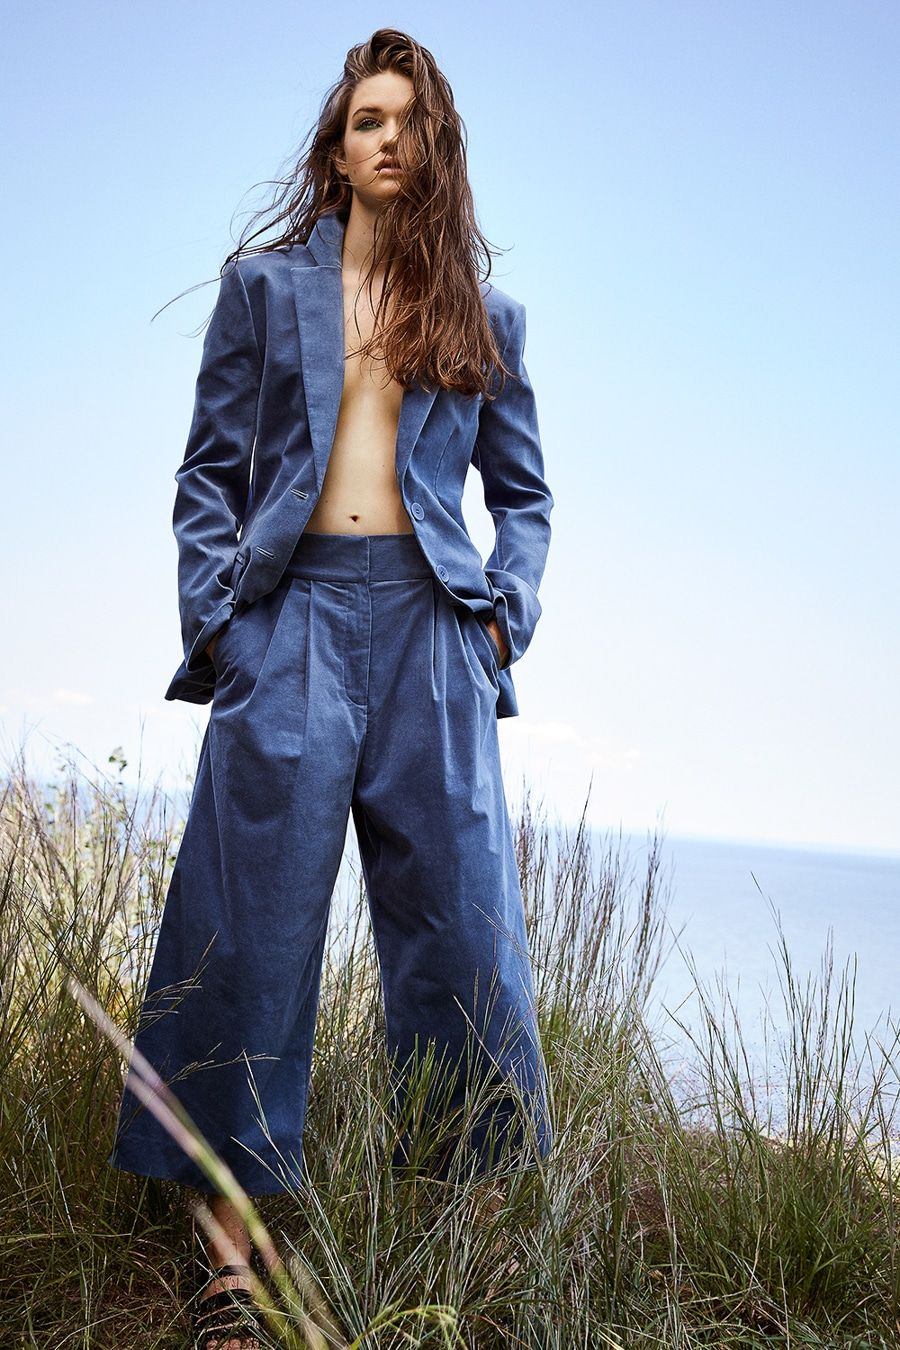 Remi Pyrdol Newest Editorial Featuring Femke Huijzer Beach